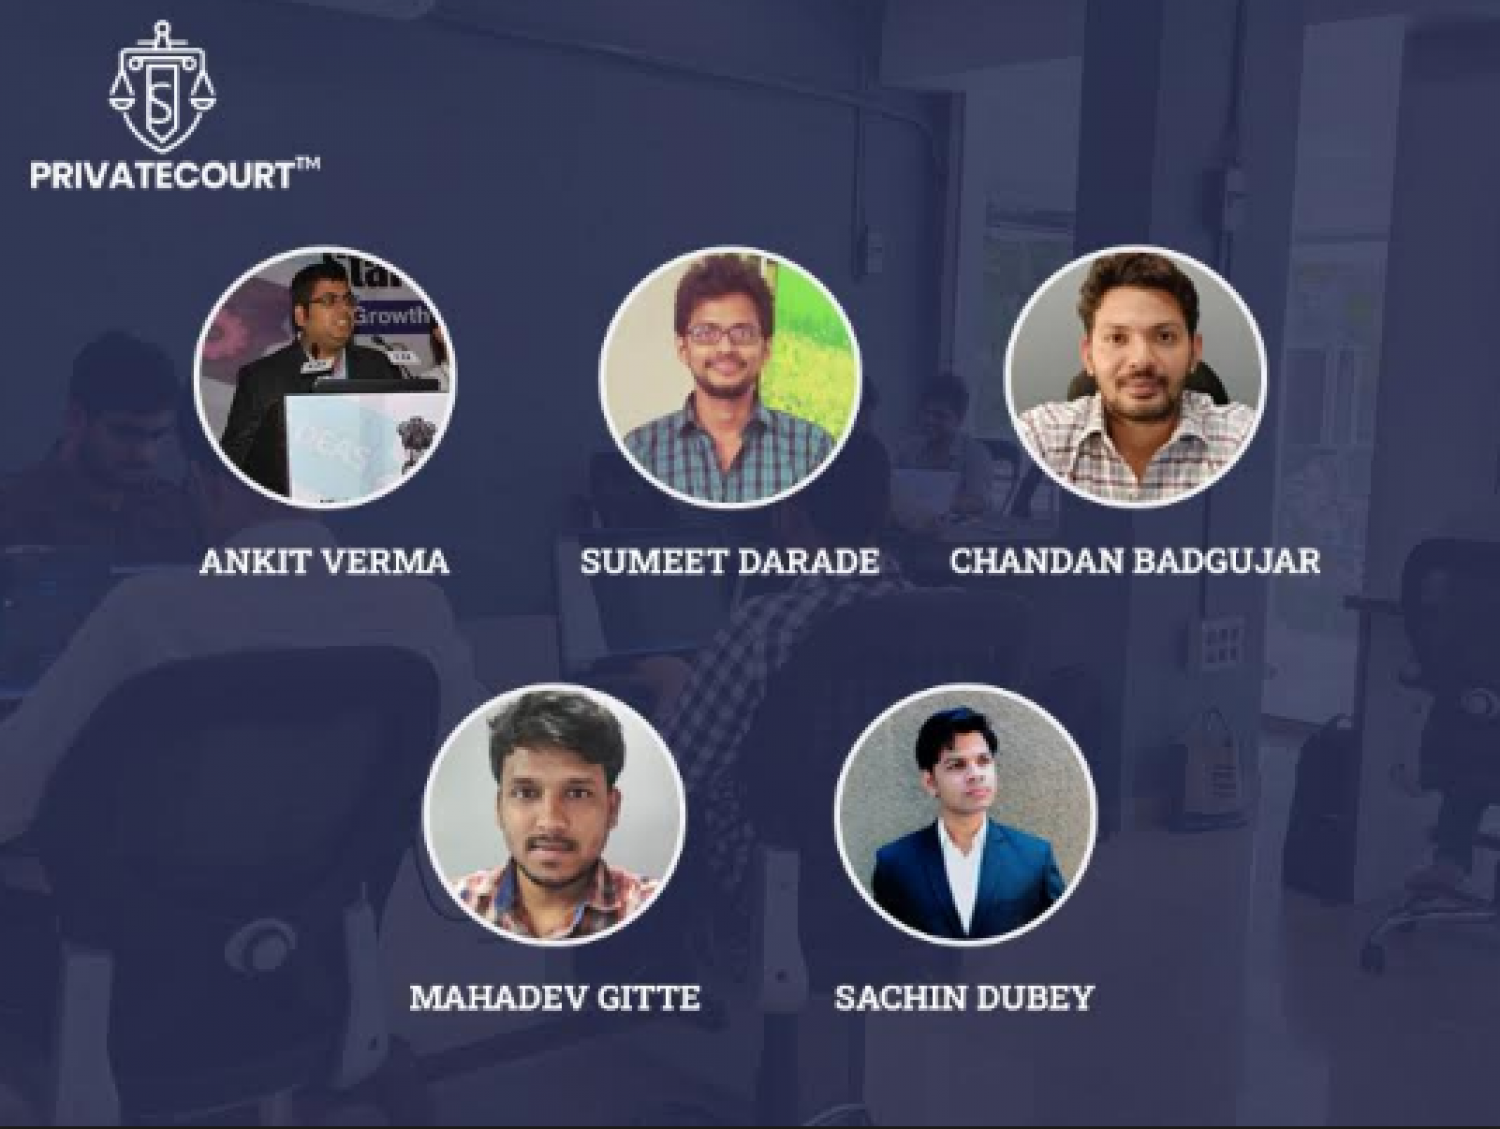 PrivateCourt is all set to revolutionize the concept of Online Dispute Resolution Infographic